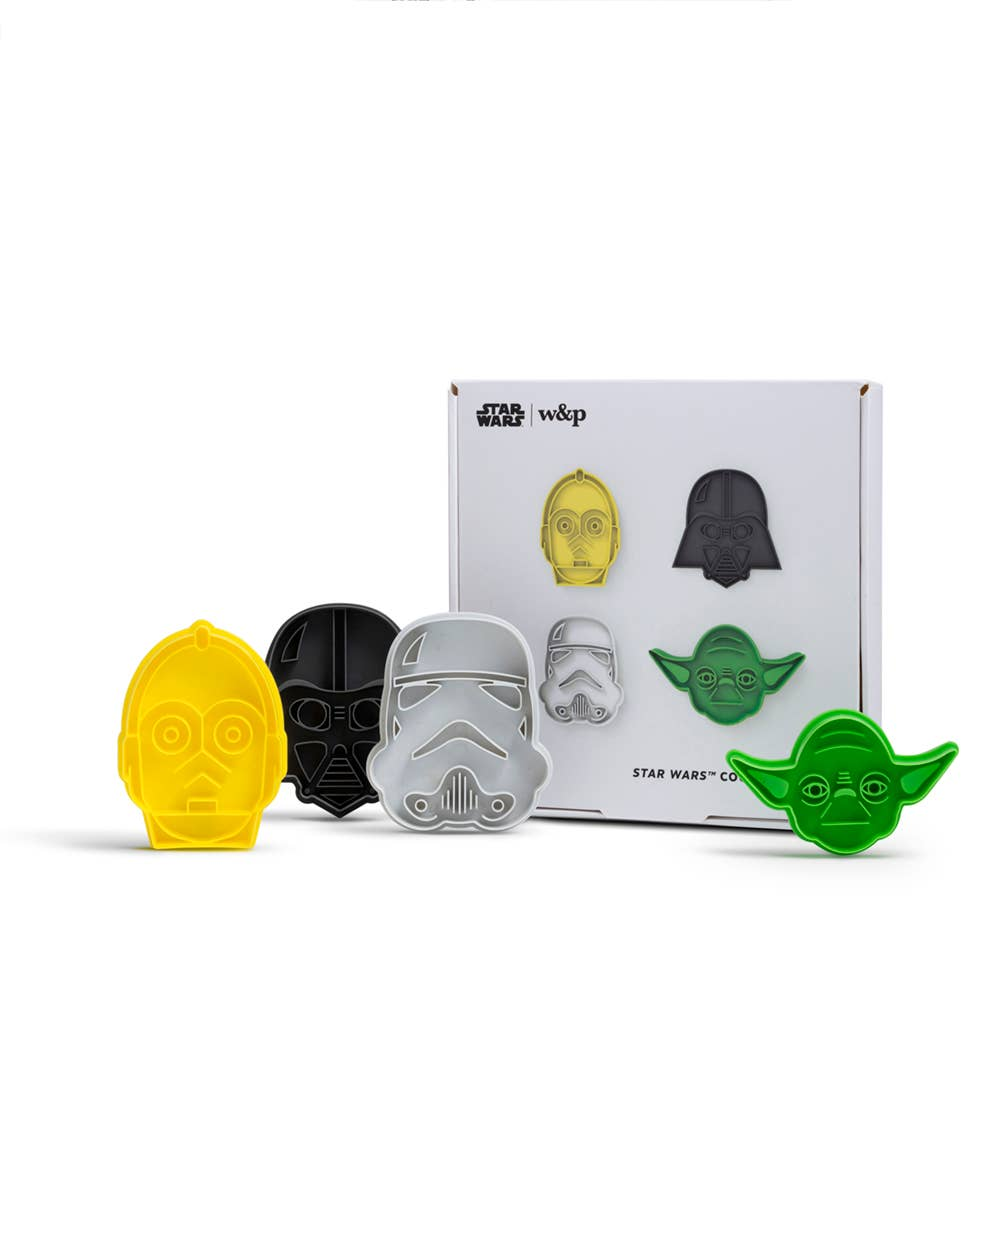 W&P - Star Wars™ Cookie Cutters